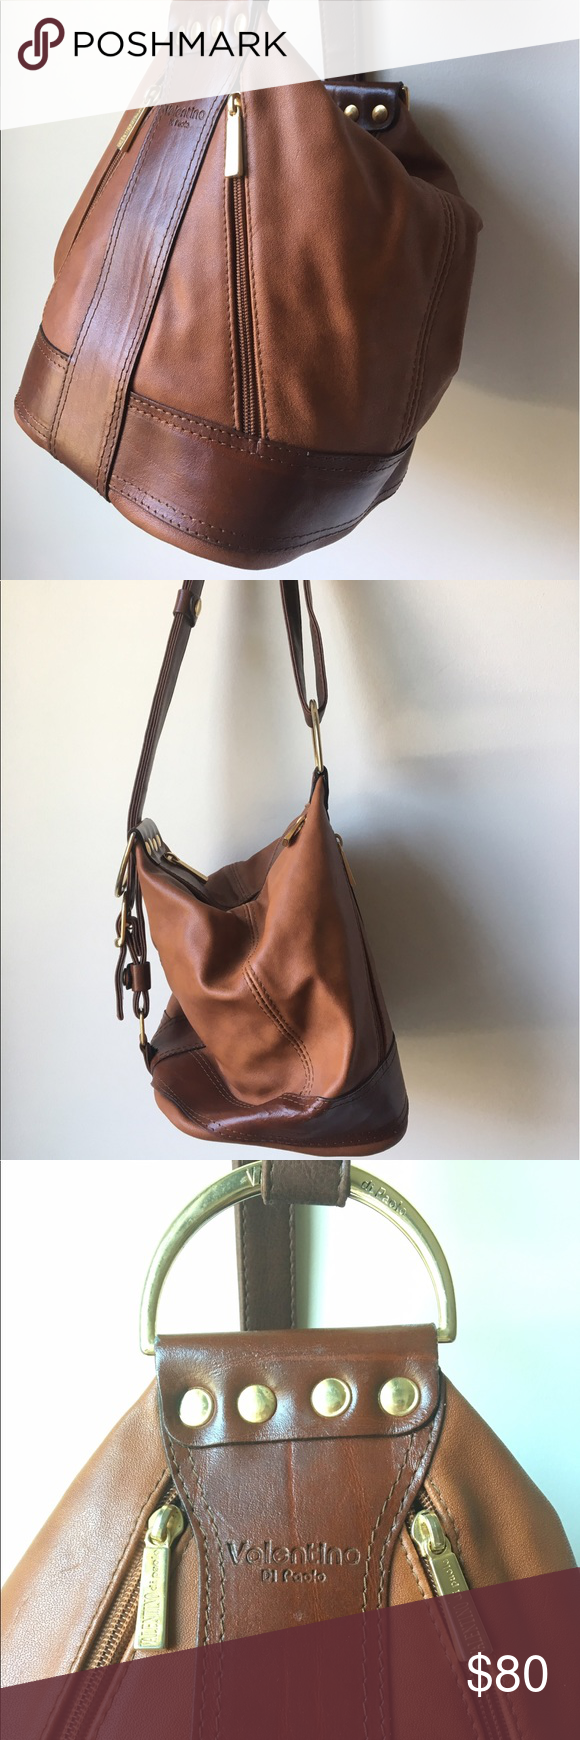 Vintage Valentino Di Paolo Brown Leather Bag Vintage Valentino Di Paolo Brown Leather Bag The Style Of Vintage Leather Bag Bucket Bag Style Brown Leather Bag